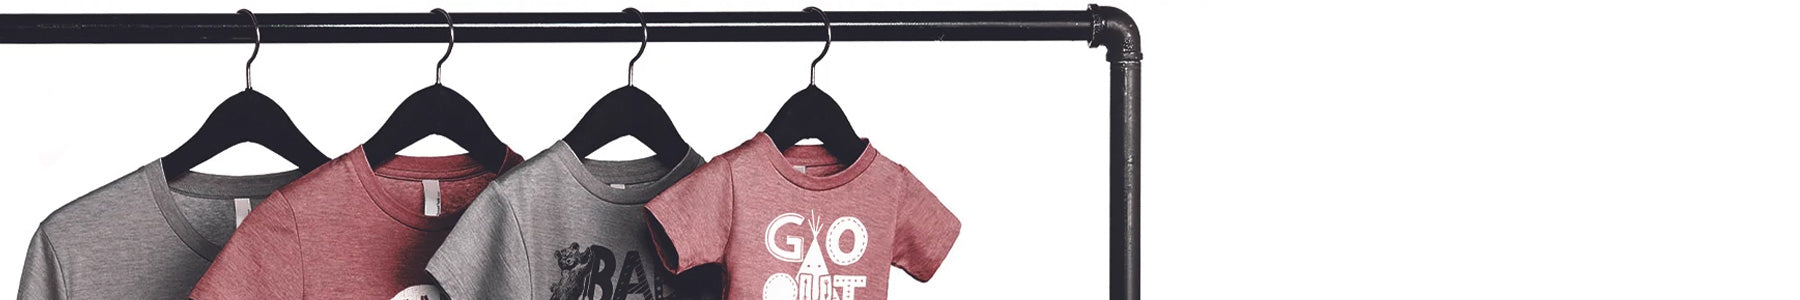 new releases graphic tees for the whole family